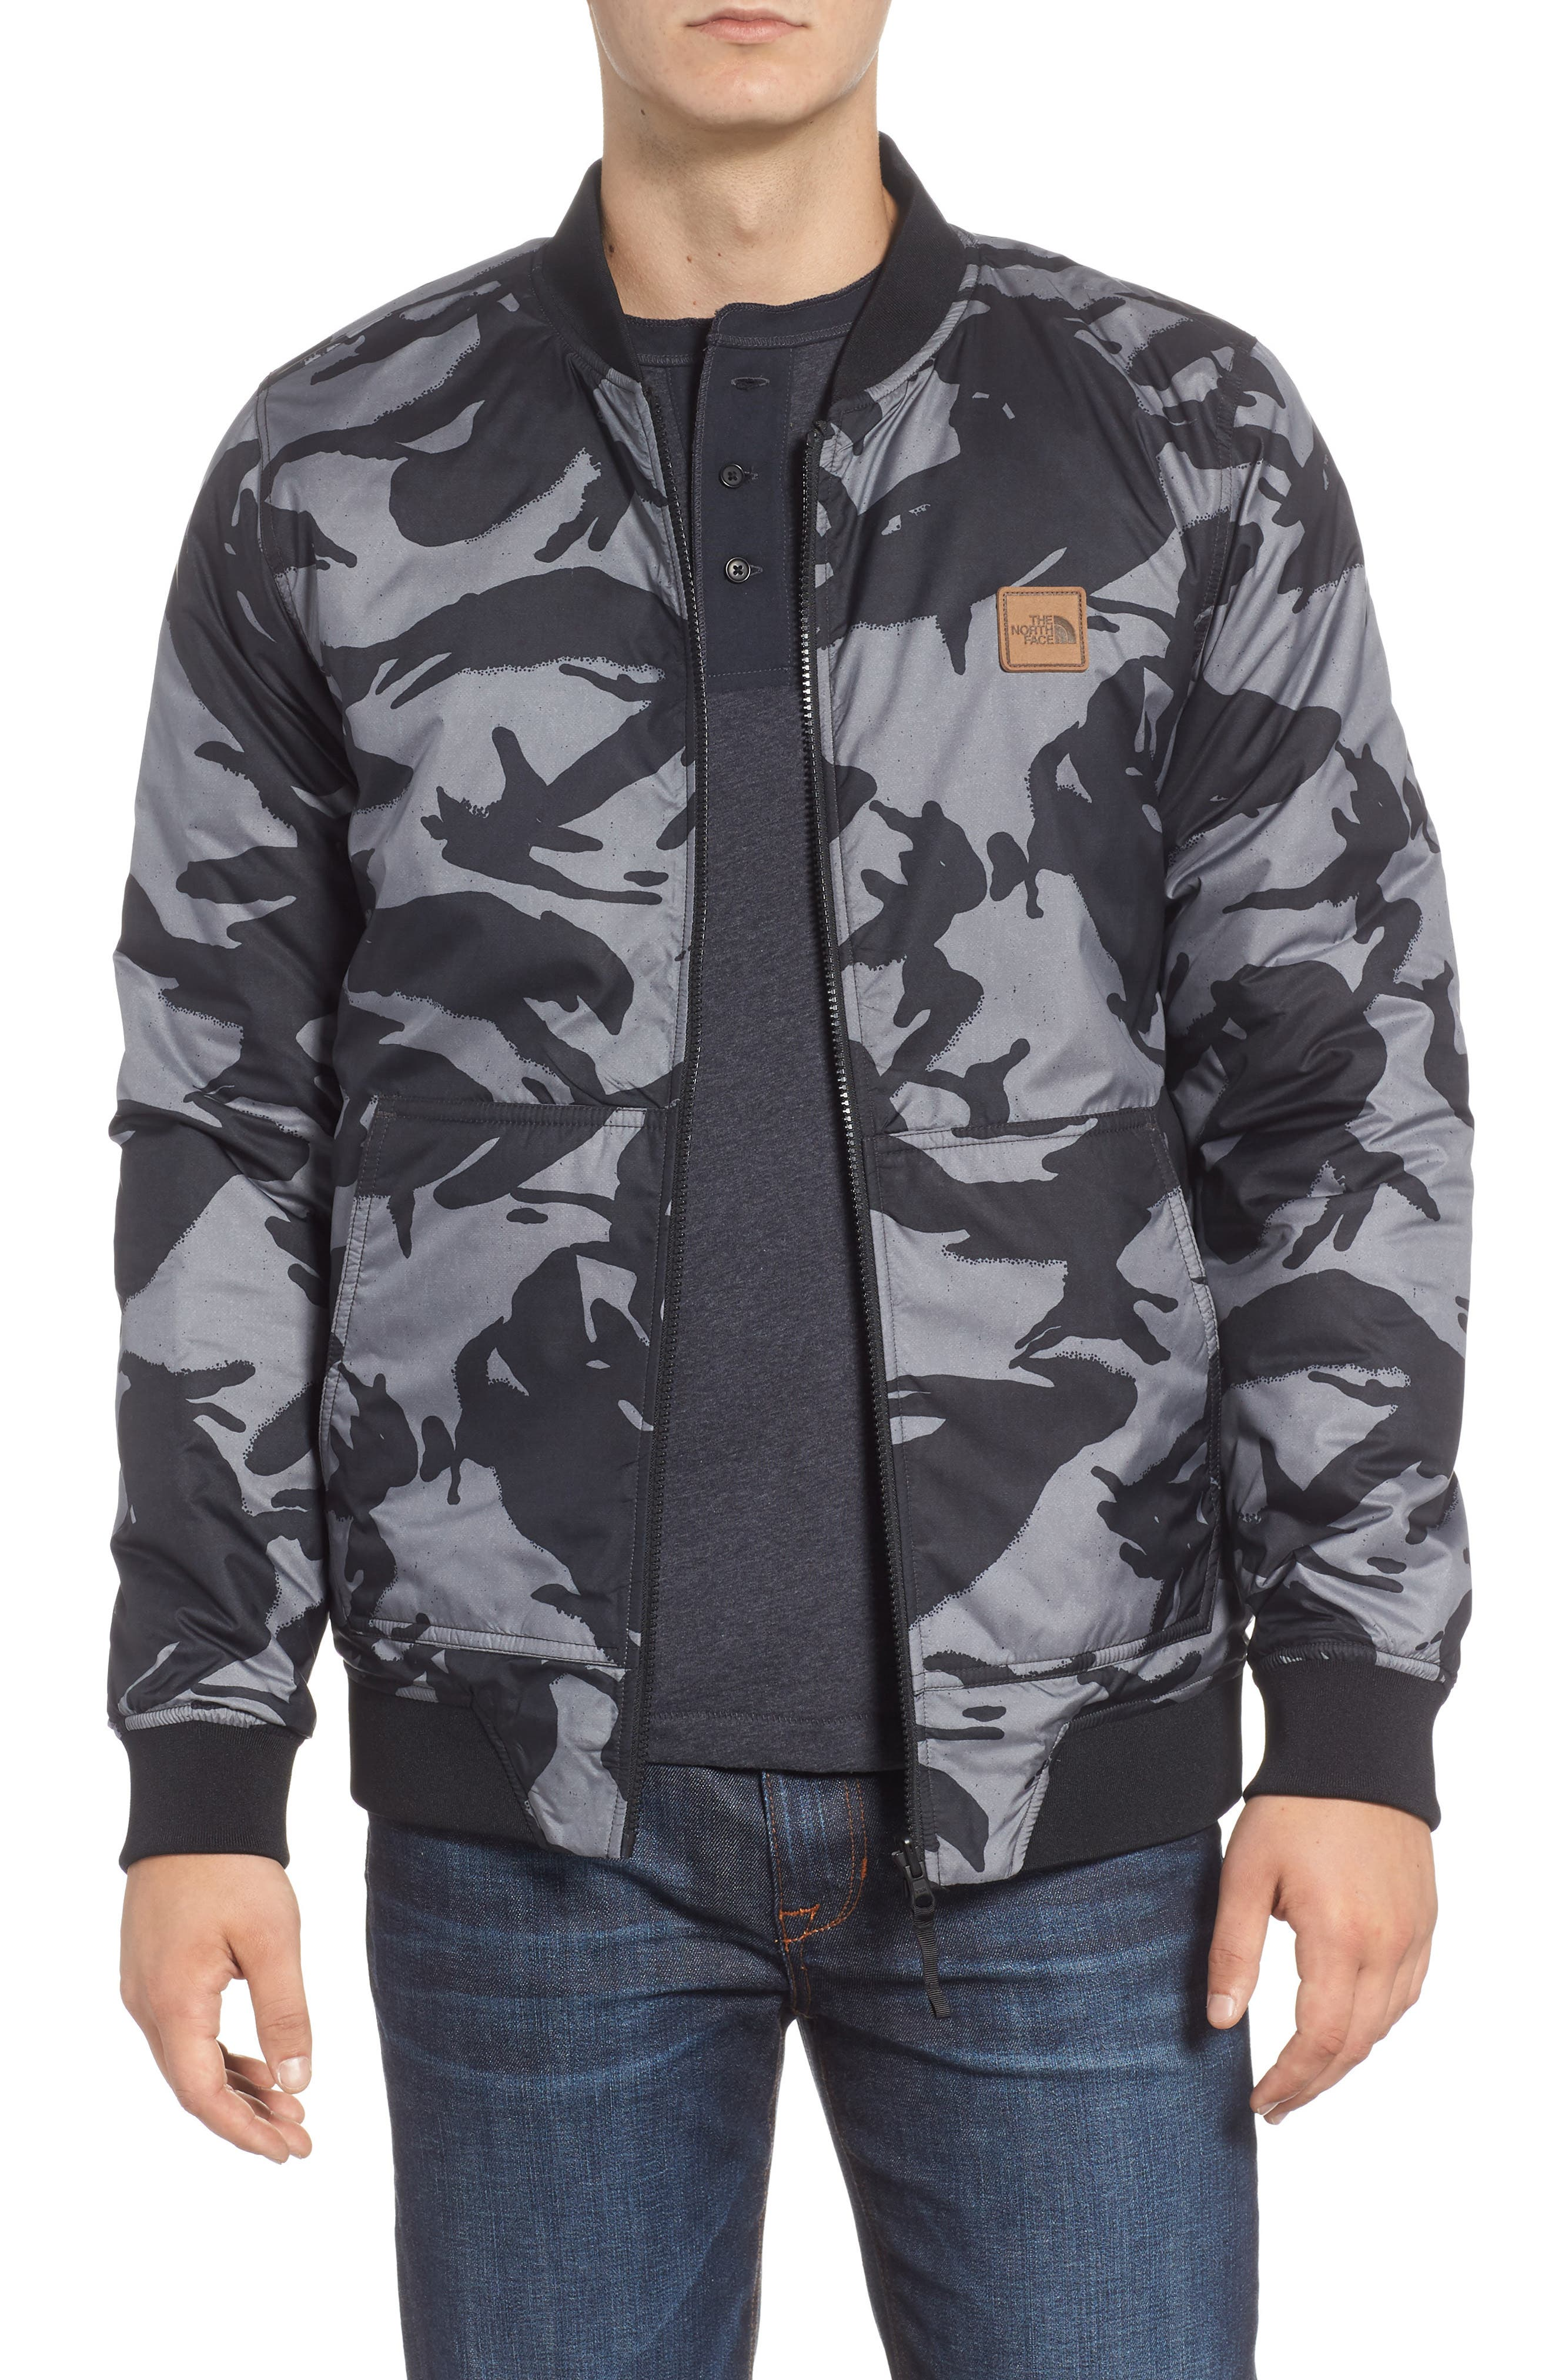 THE NORTH FACE, Jester Reversible Bomber Jacket, Alternate thumbnail 2, color, 001